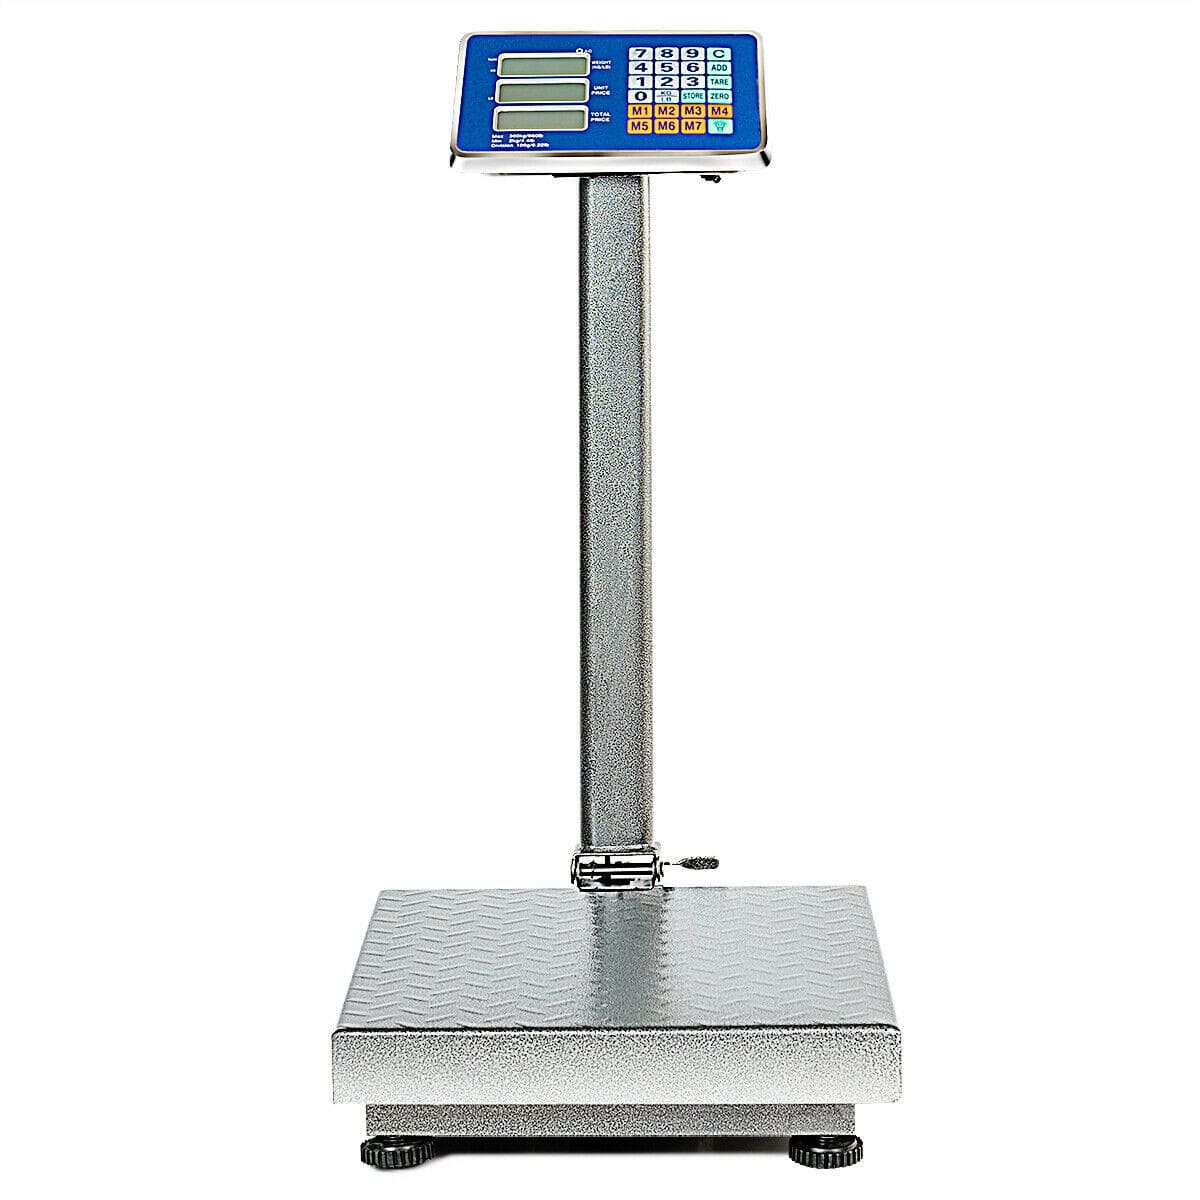 660 lbs Weight Platform Scale Digital Floor Folding Scale - $65.95 + Free Shipping